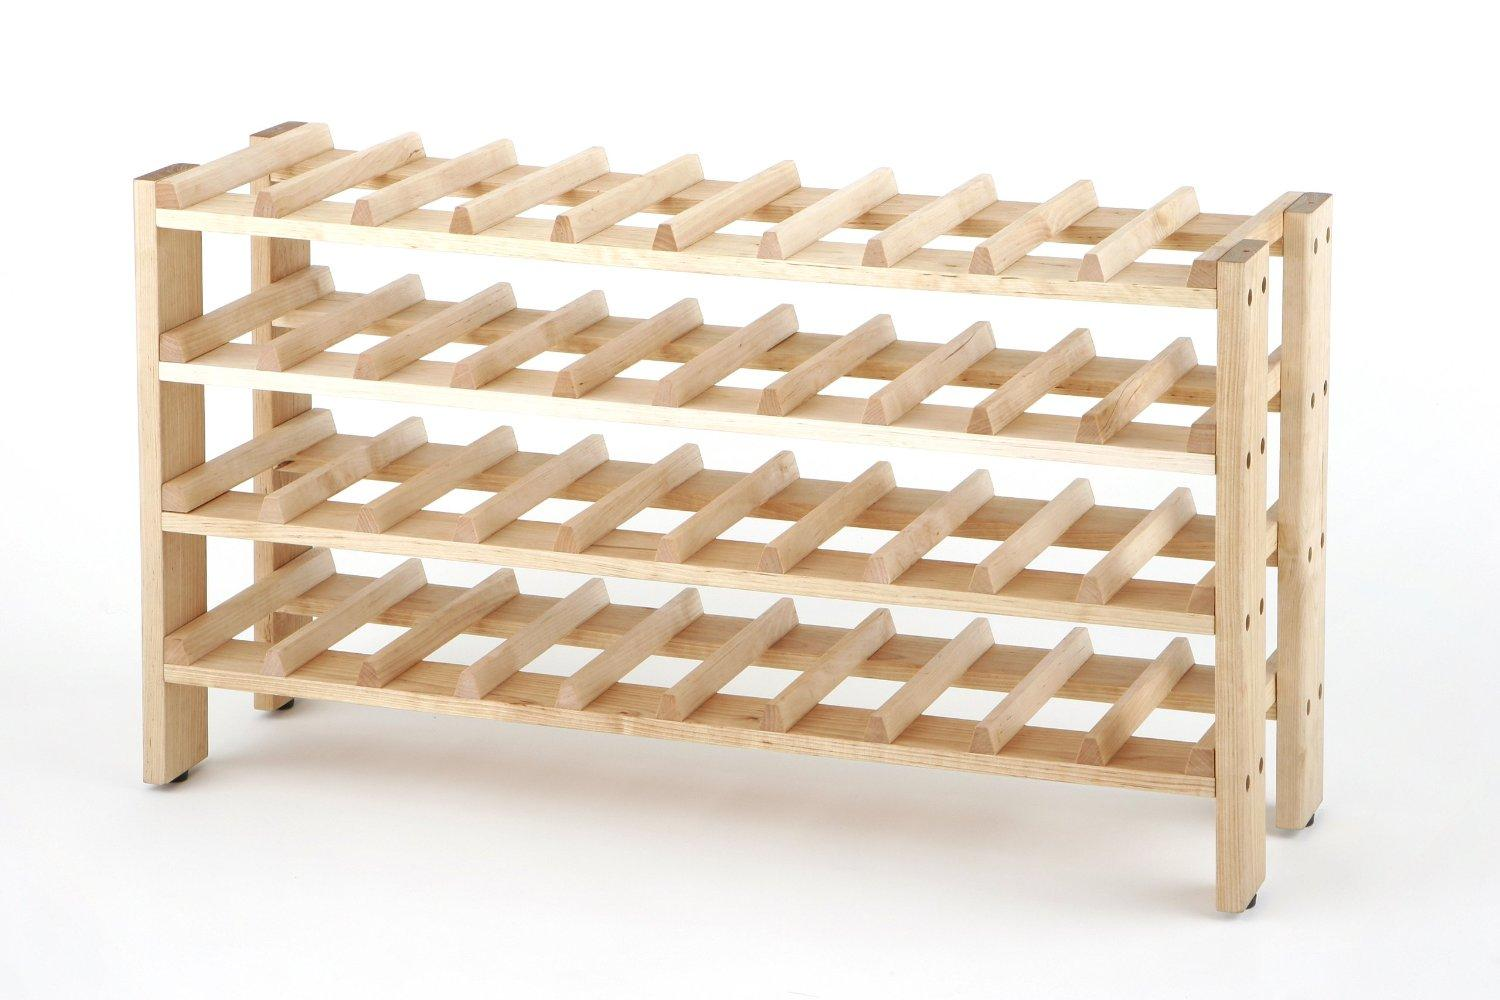 Wine Racks For Home: Amazon.com: Seville Classics 40-Bottle Birchwood Wine Rack